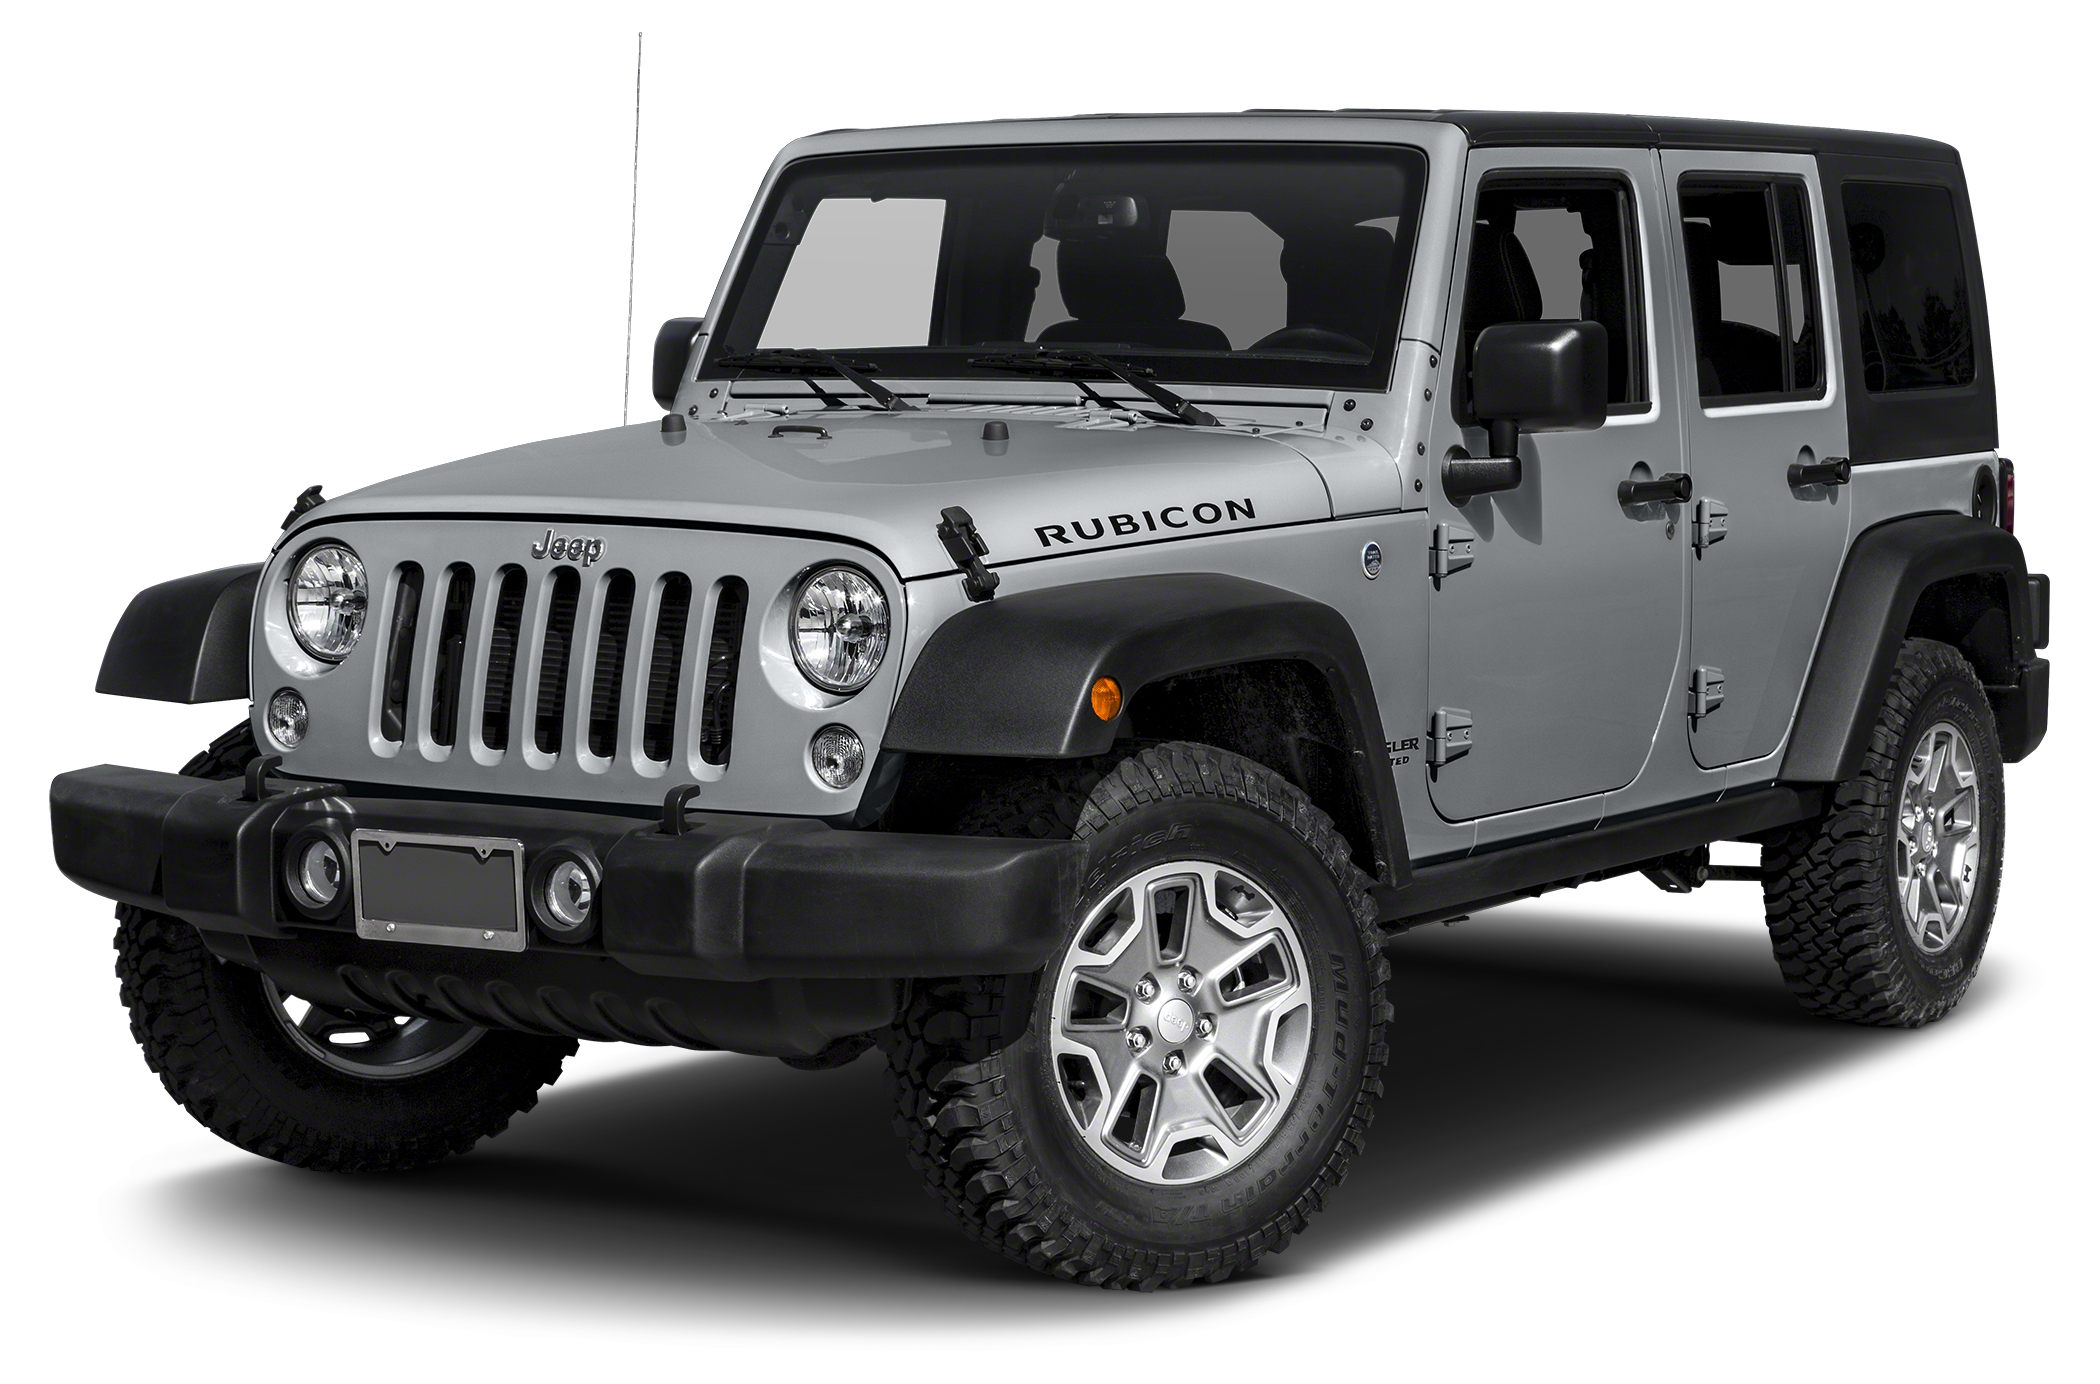 2015 Jeep Wrangler Unlimited Rubicon This 2015 Jeep Wrangler Unlimited 4WD 4dr Rubicon is offered